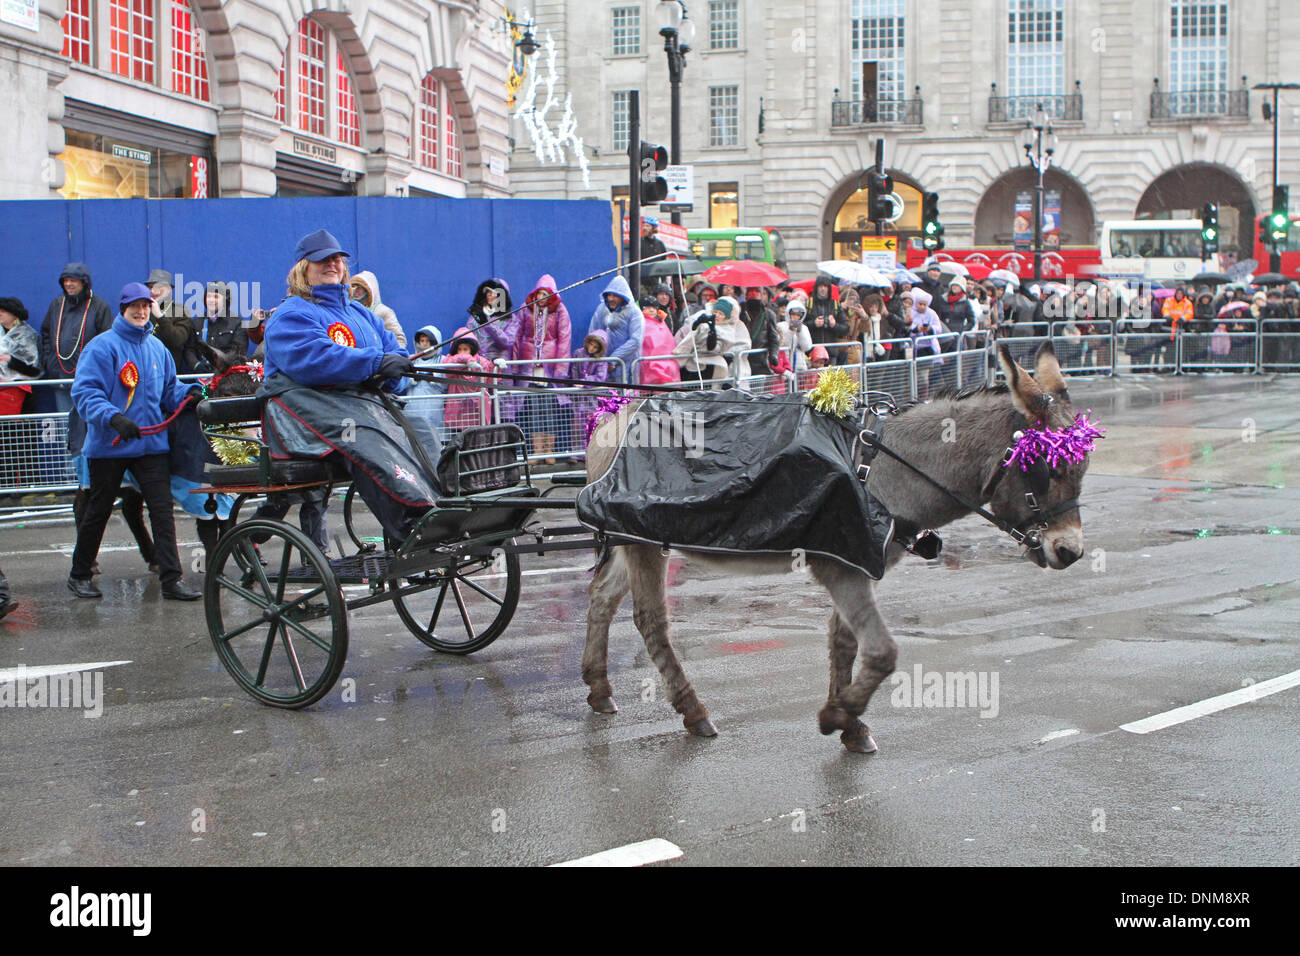 London,UK,1st January 2014,Little Donkey and cart took part in the London's New Year's Day Parade 2014 Credit: Keith Larby/Alamy Live News - Stock Image